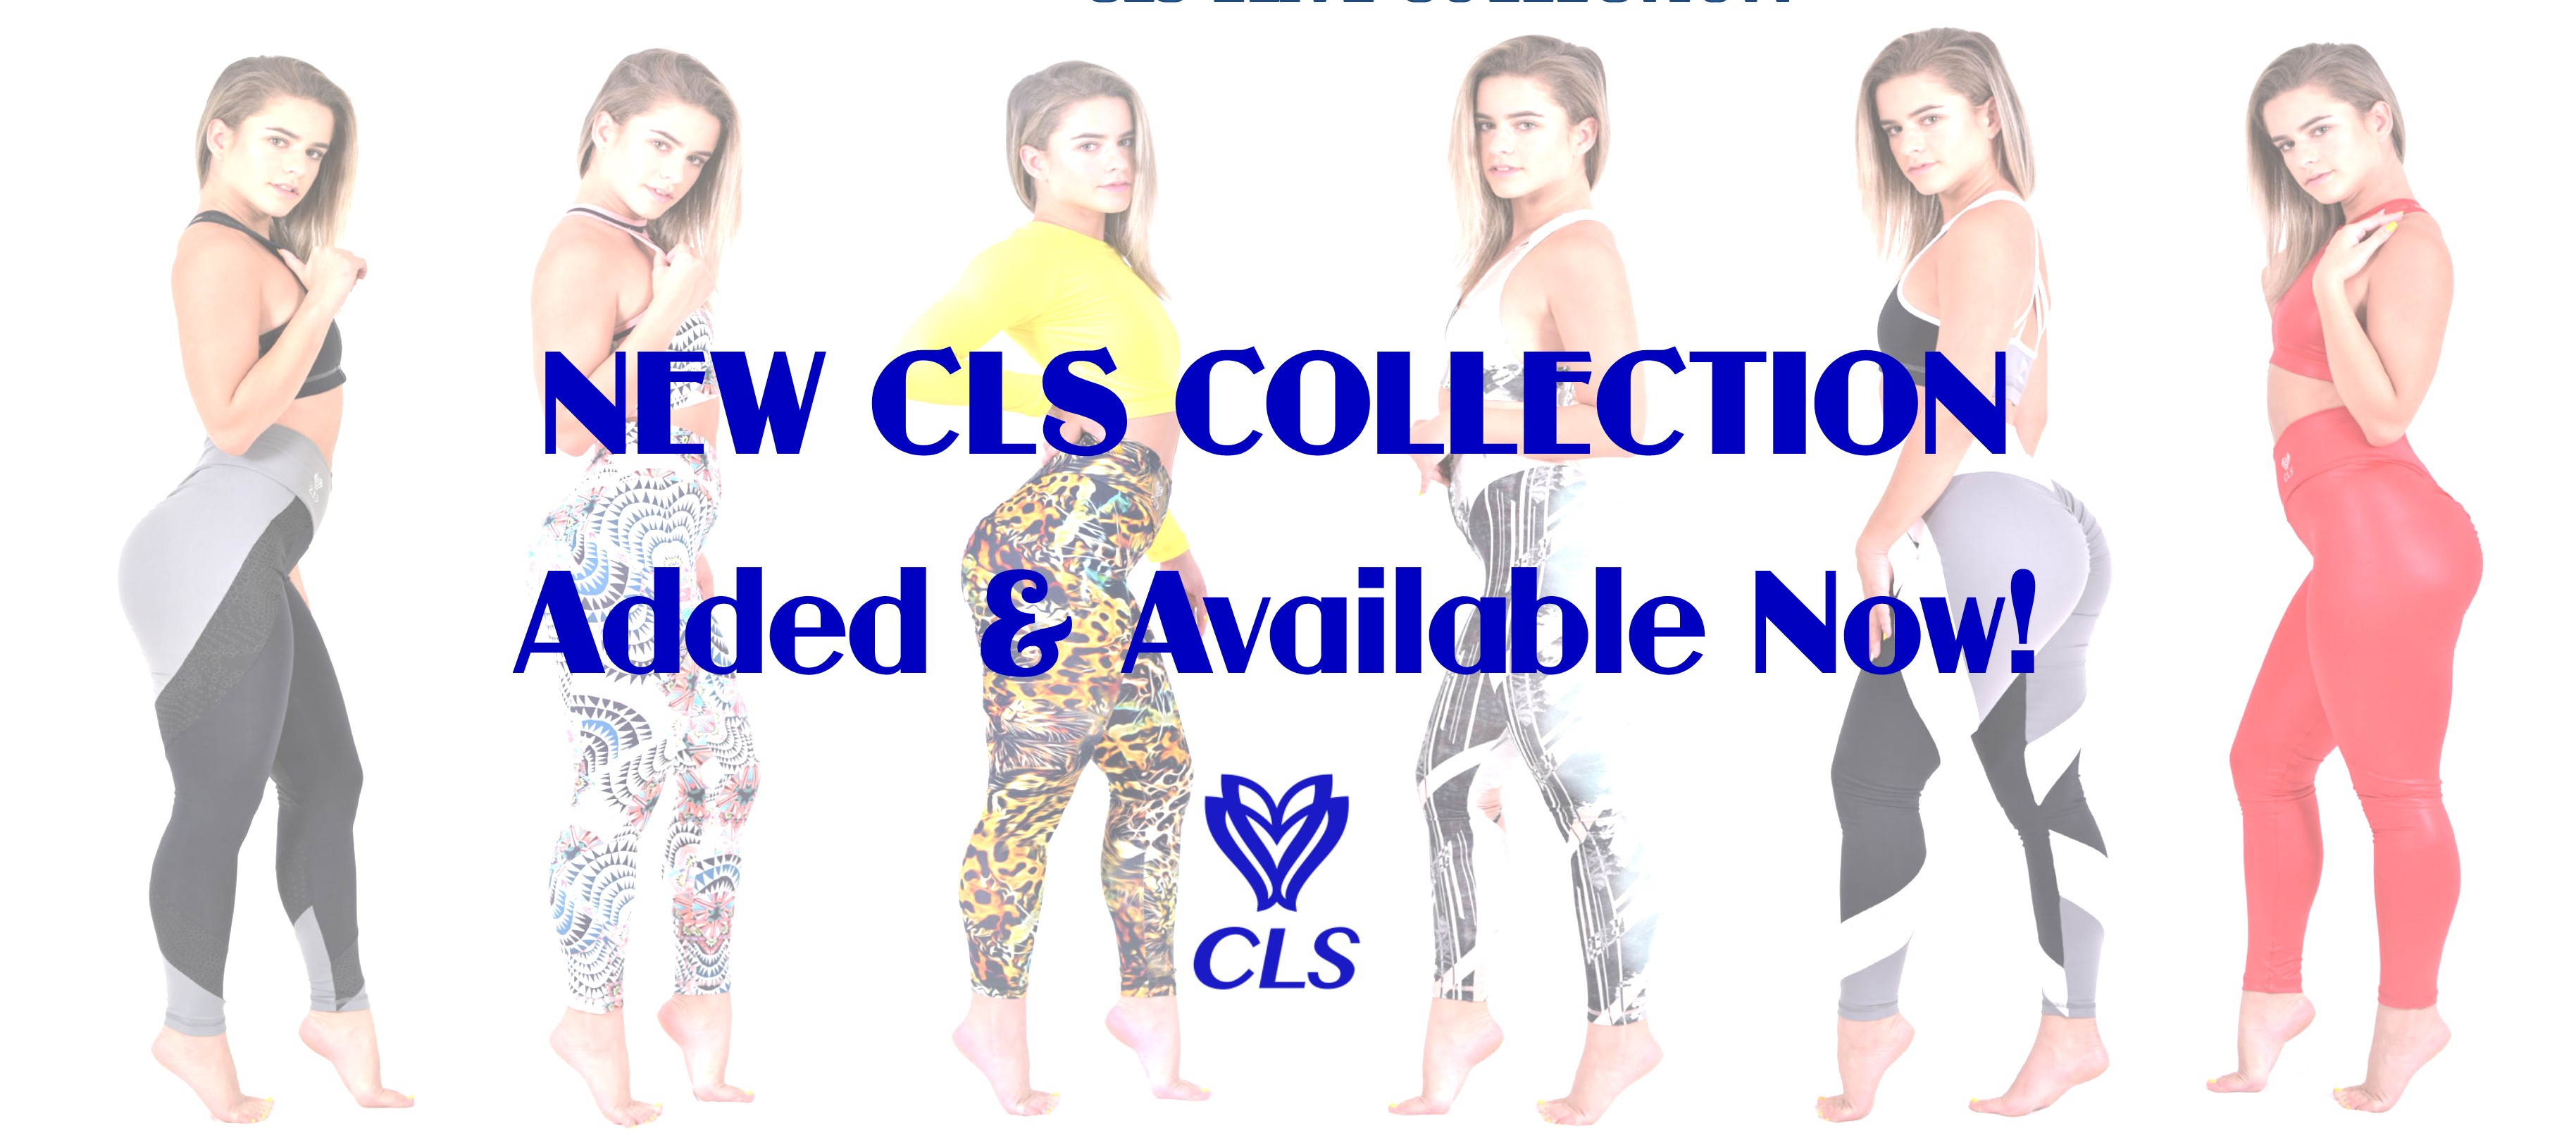 https://www.clssportswear.com/wp-content/uploads/2019/01/Announce-Slider_NewCLS_Collection.jpg